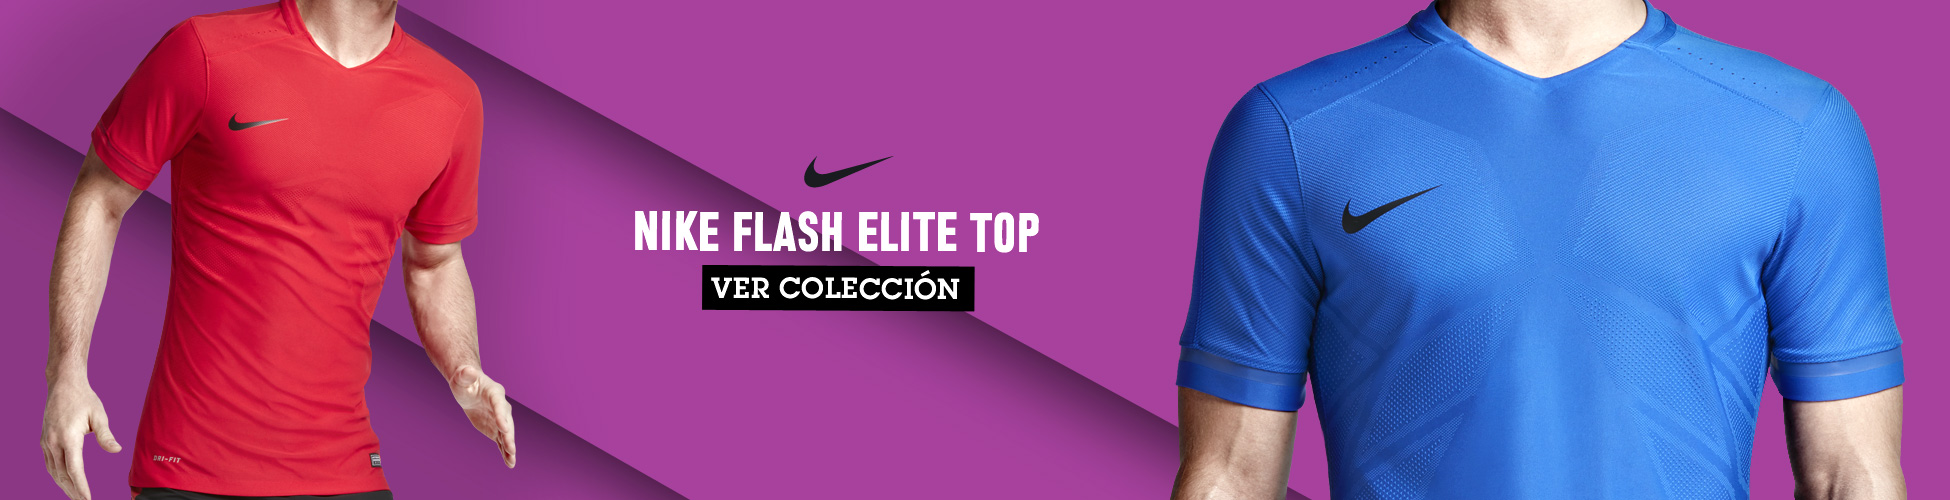 Nike Flash Elite Top